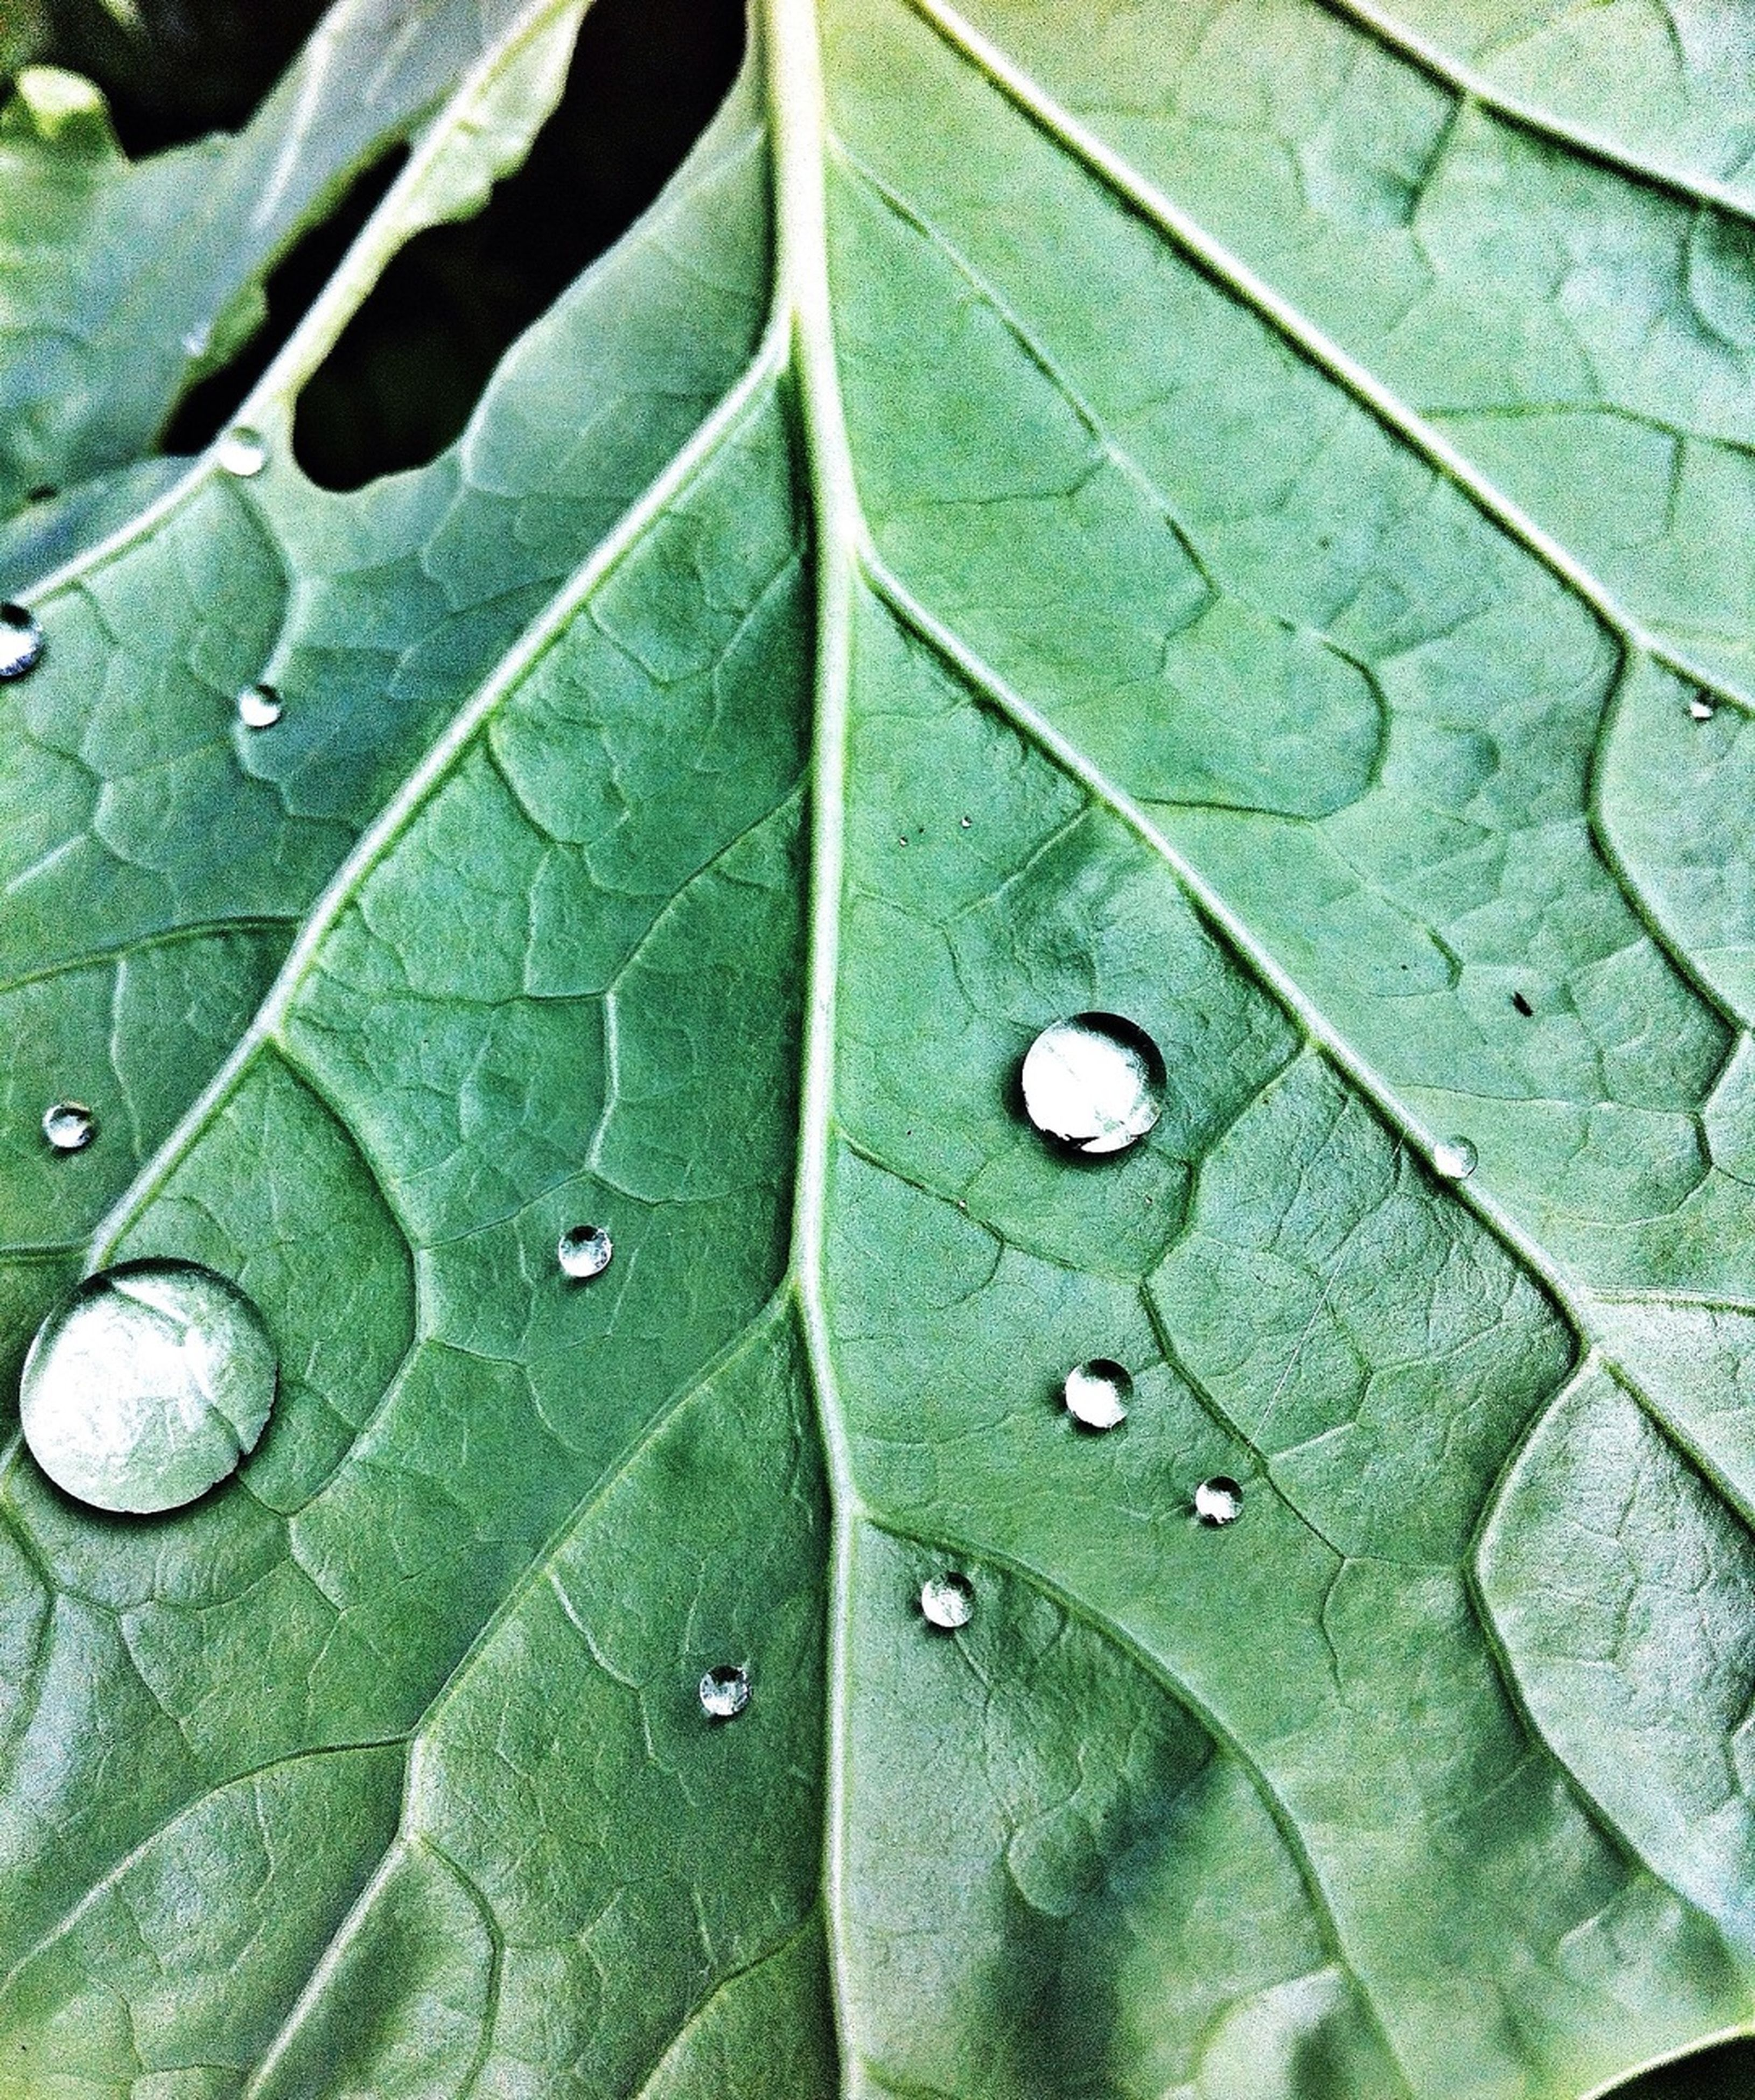 leaf, leaf vein, green color, close-up, full frame, backgrounds, natural pattern, pattern, drop, nature, growth, wet, textured, high angle view, detail, beauty in nature, water, day, outdoors, no people